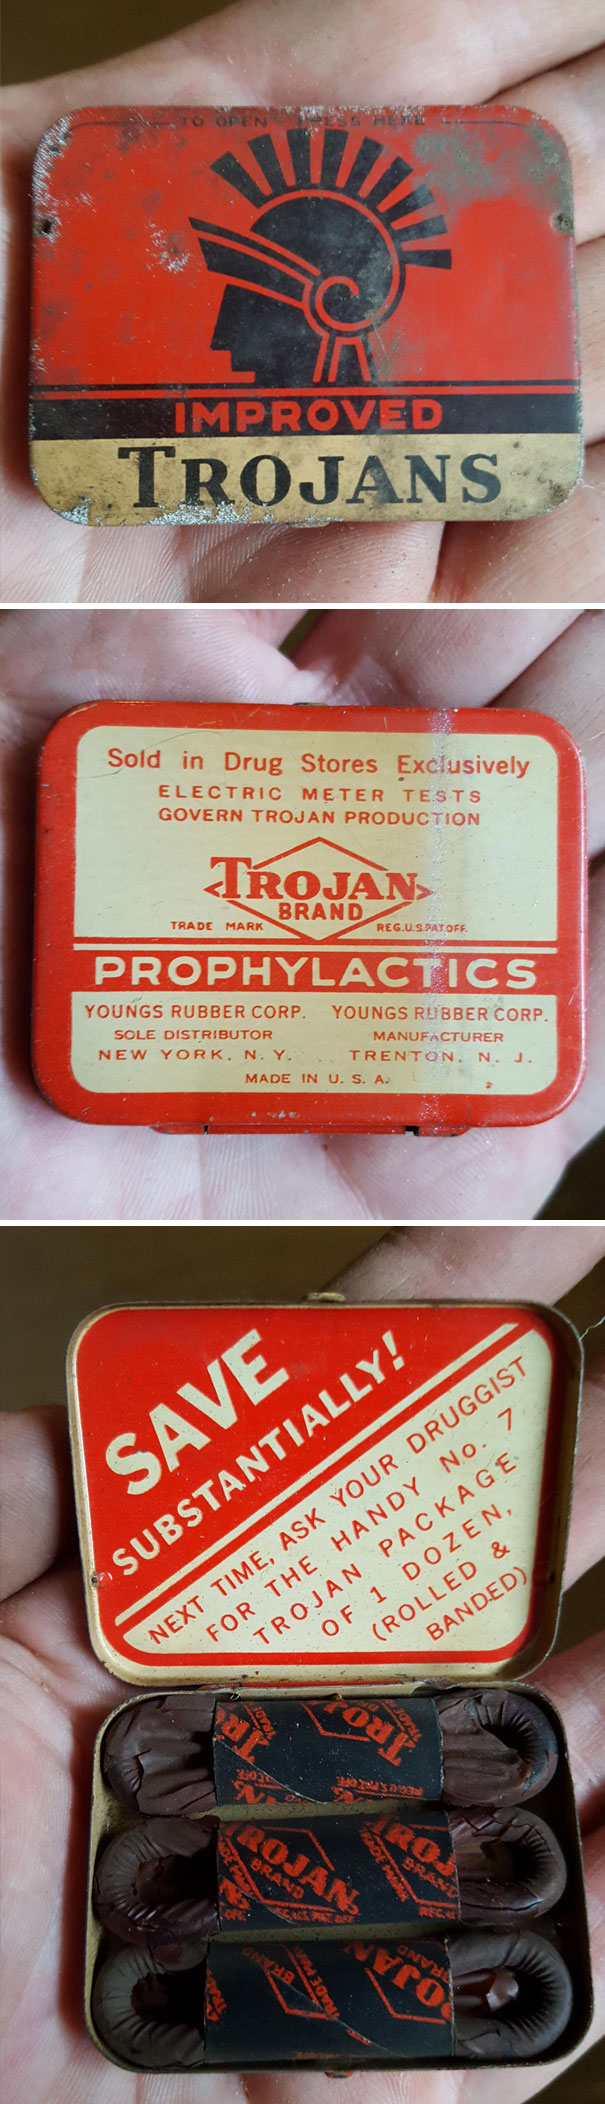 These Condoms Are Around 60 Years Old (Found In My Basement)